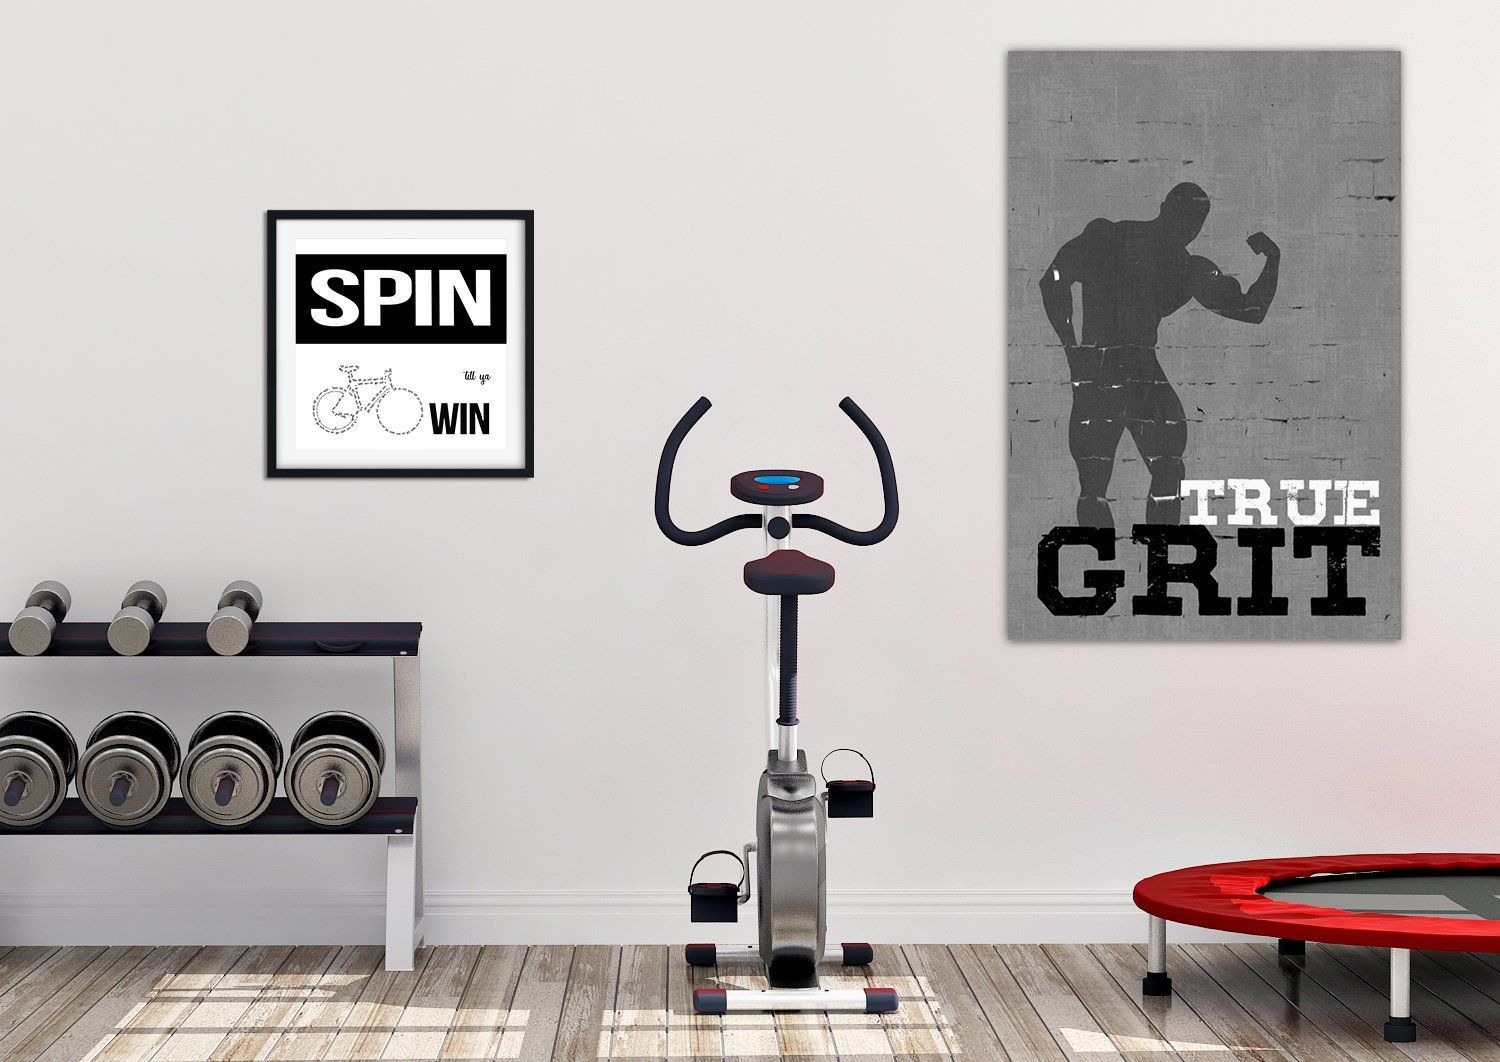 Poster Size True Grit Gym Printable In Gray White And Black Who Said A Home Gym Has To Be Blah And Boring Jazz Up Your Workout Rooms At Home Gym Home